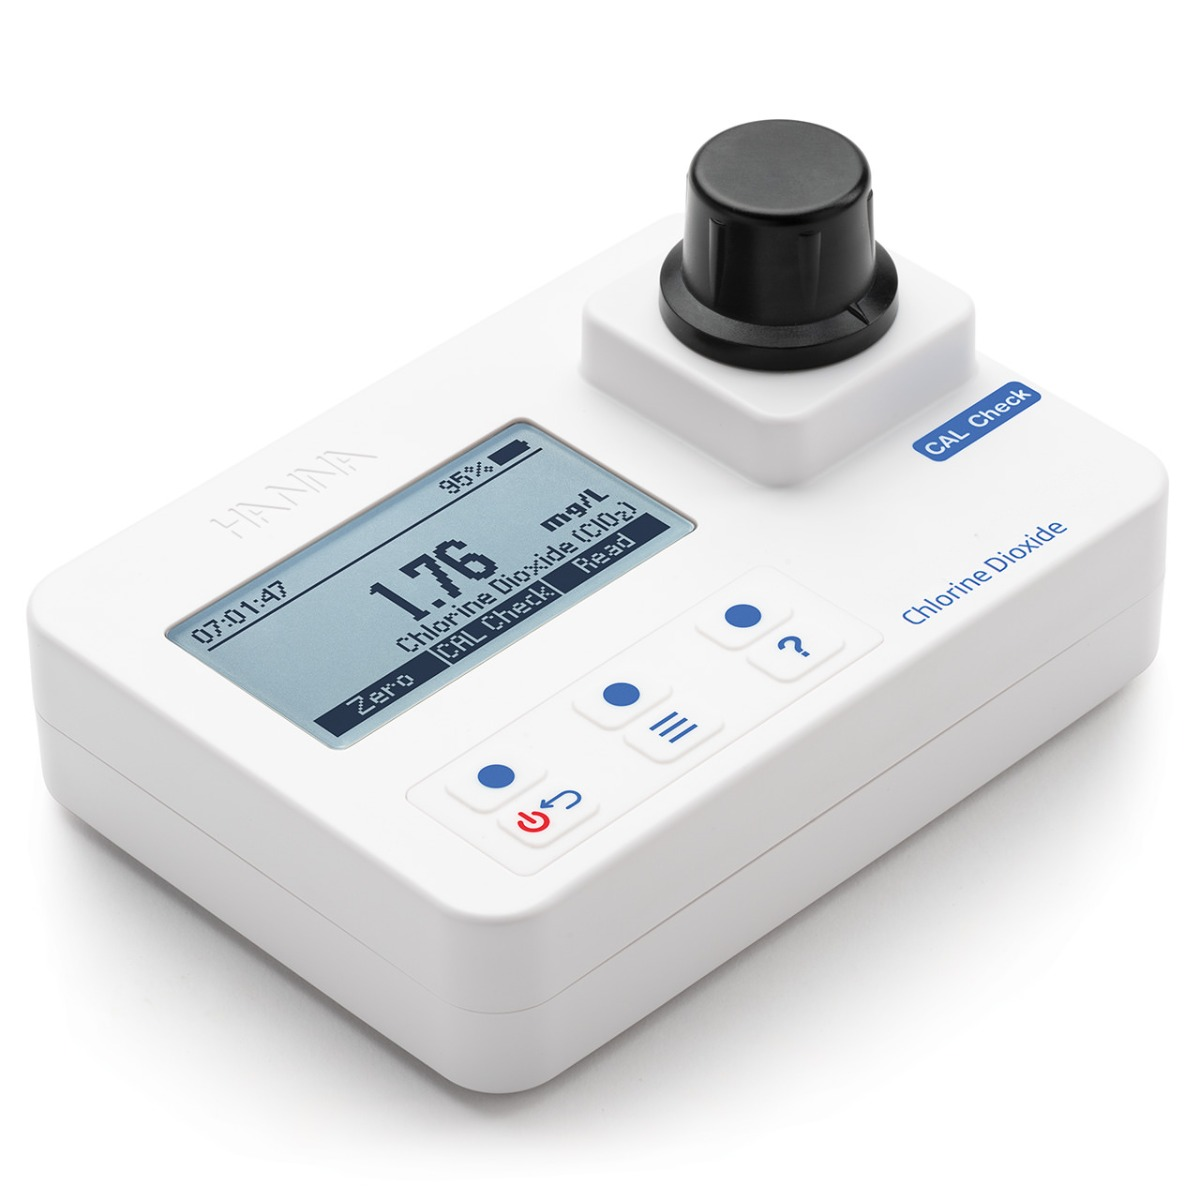 Chlorine Dioxide Portable Photometer with CAL Check – HI97738